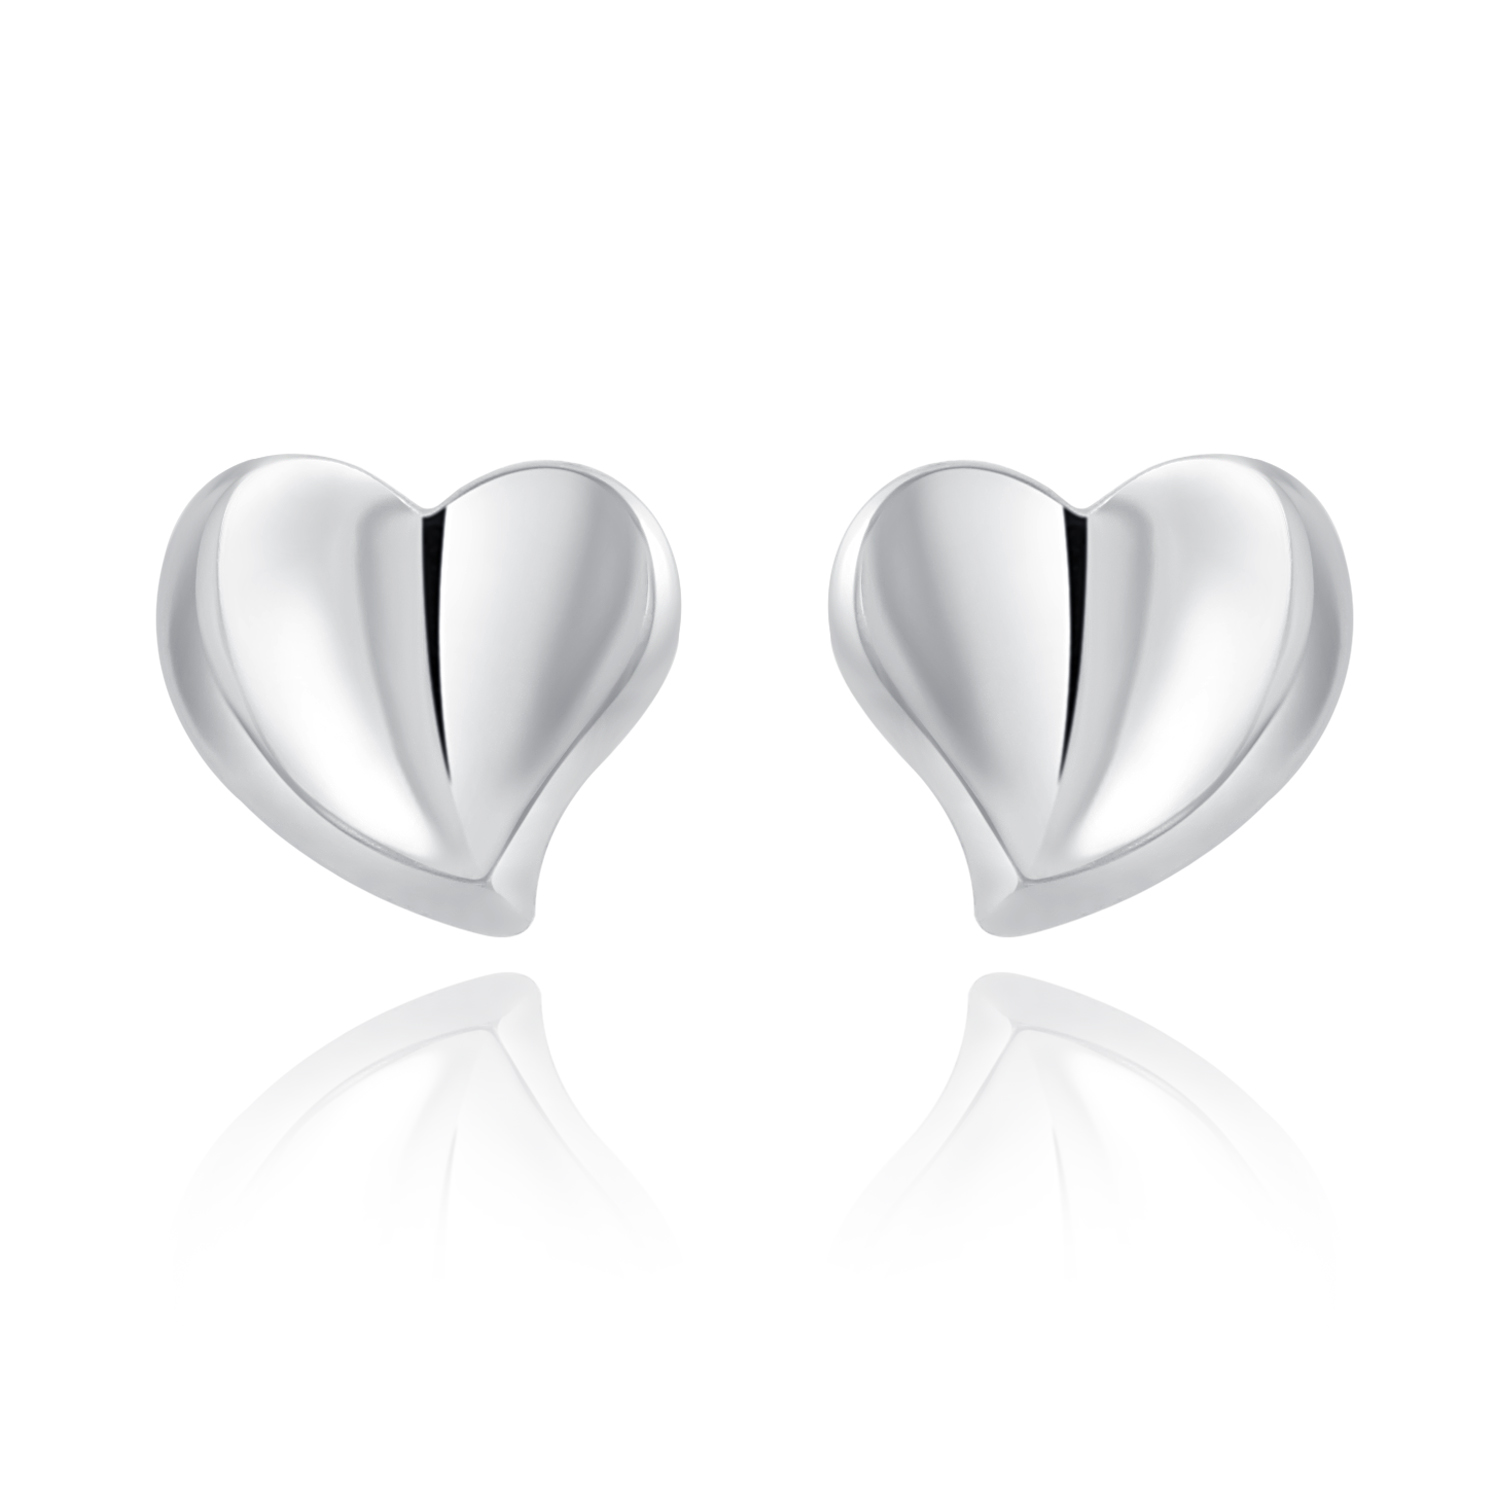 shaped m g earrings heart steven stud silver sterling products